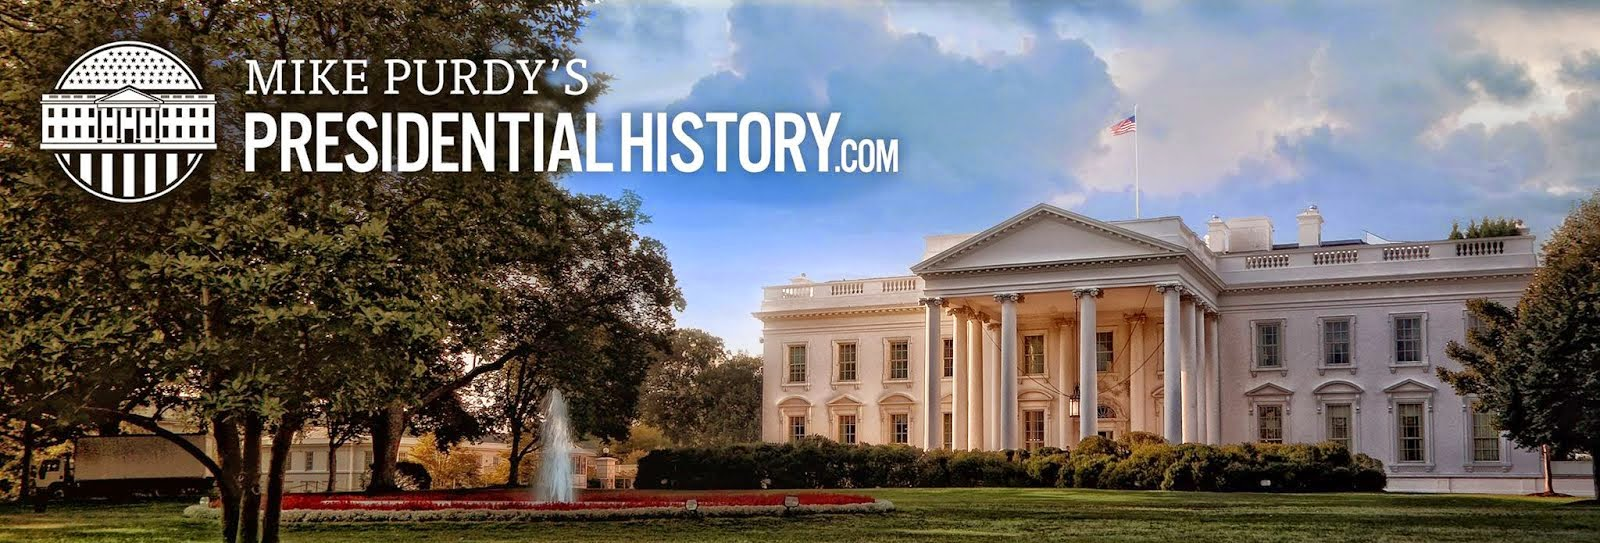 My Presidential History Blog